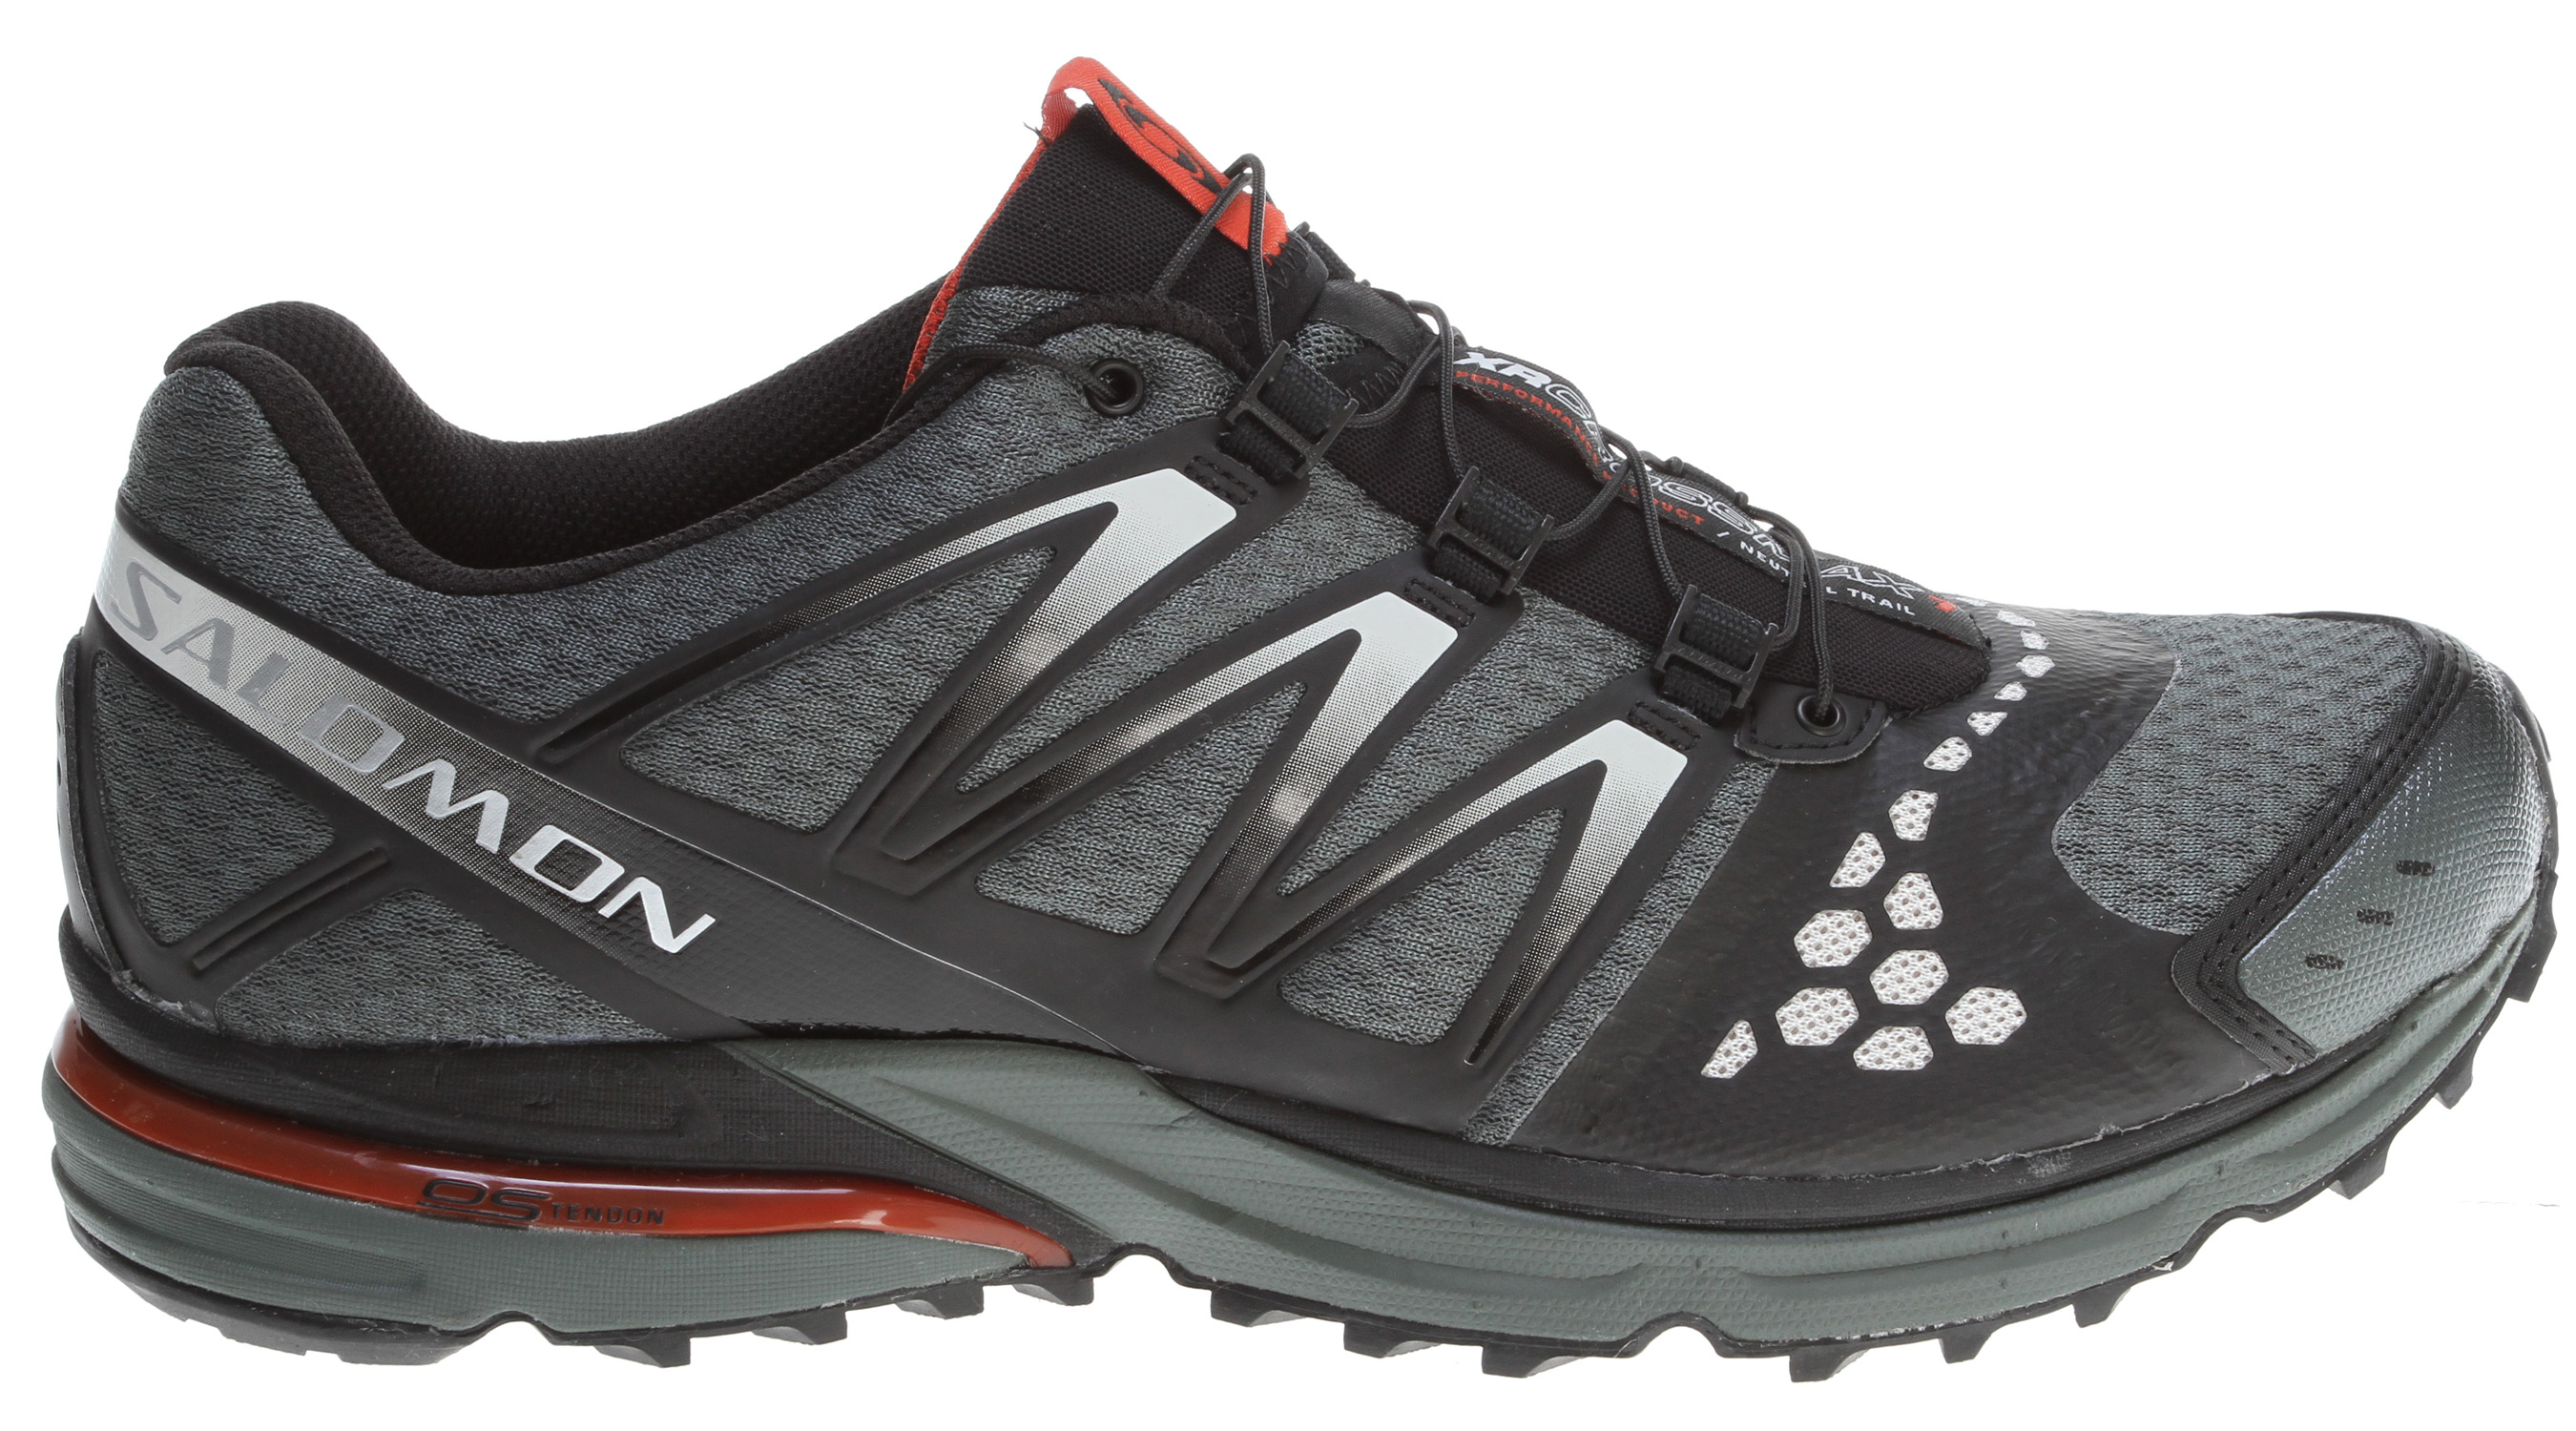 Camp and Hike High mileage training shoe for neutral runners who want one shoe from door to trail.Key Features of the Salomon XR Crossmax Neutral Hiking Shoes: Weight: 12oz Stretch air mesh upper Friction free lace eyelet Sensifit Lace pocket Sensiflex Quicklace Women's specific last Textile lining Contagrip LT, Contagrip HA, Non-marking Contagrip OS Tendon Ortholite Molded EVA Midsole height: 10.5mm/23mm - $94.95